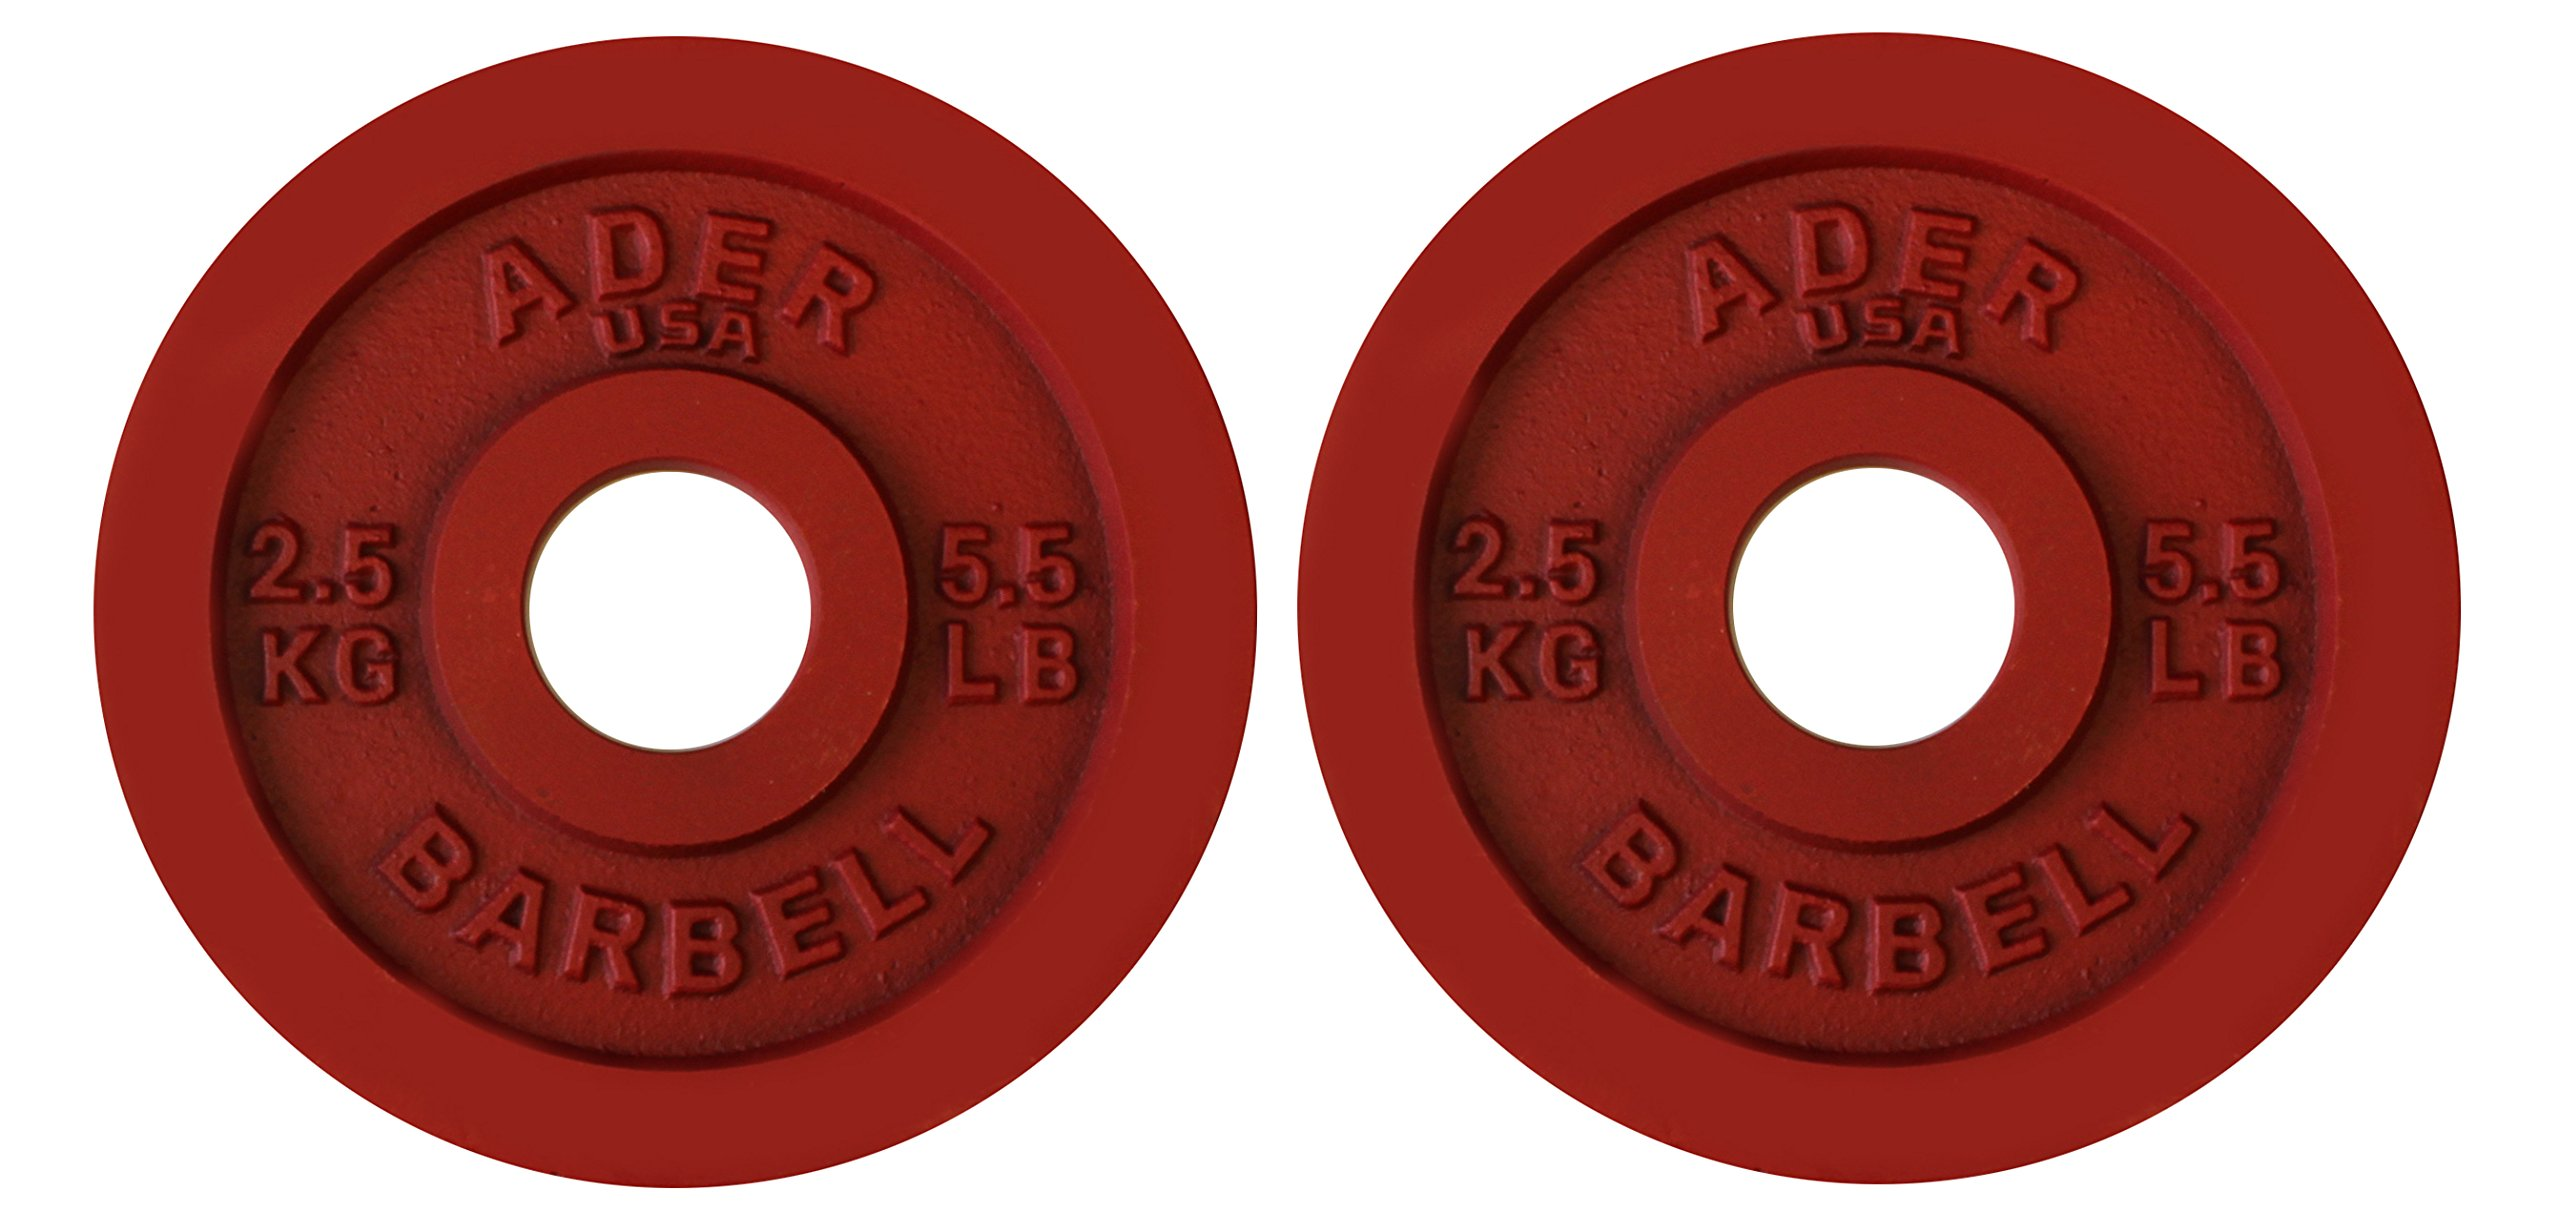 Ader Sporting Goods Precision Olympic Plates (2pcs), Red (2.5 KG)